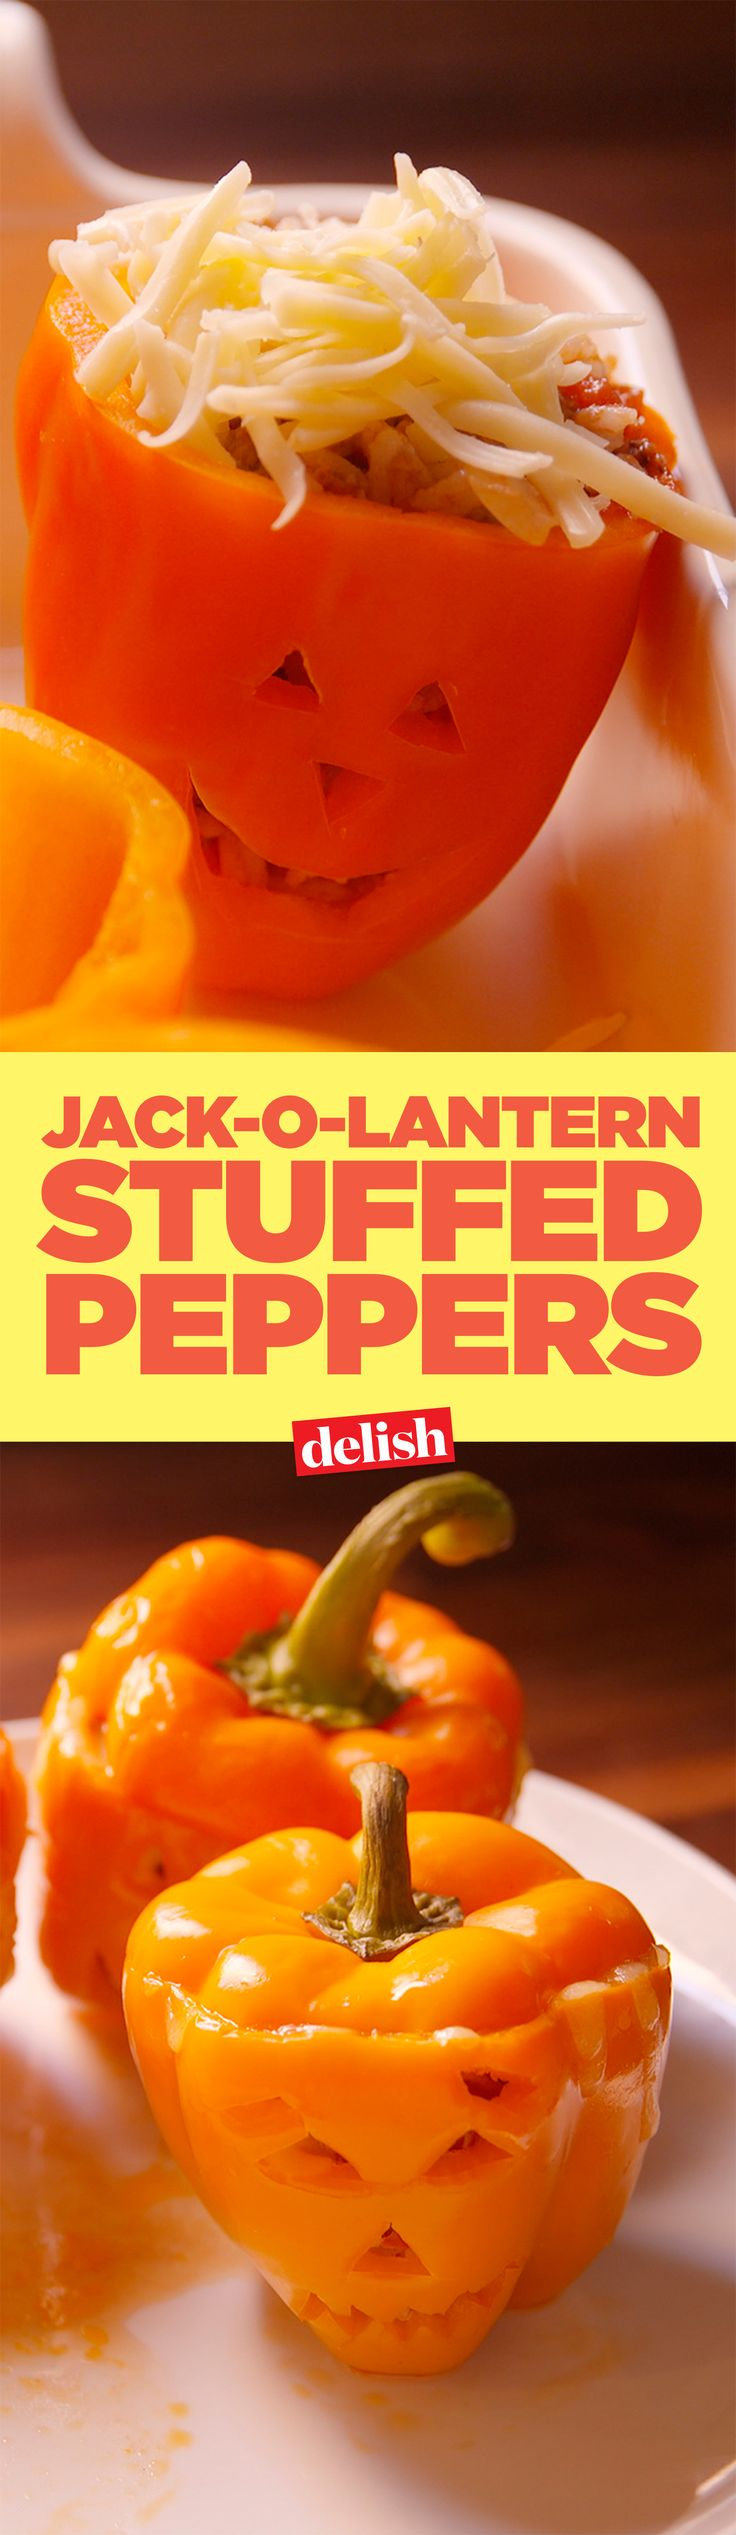 You should be making jack-o'-lantern stuffed peppers for dinner this Halloween. Get the recipe on Delish.com.